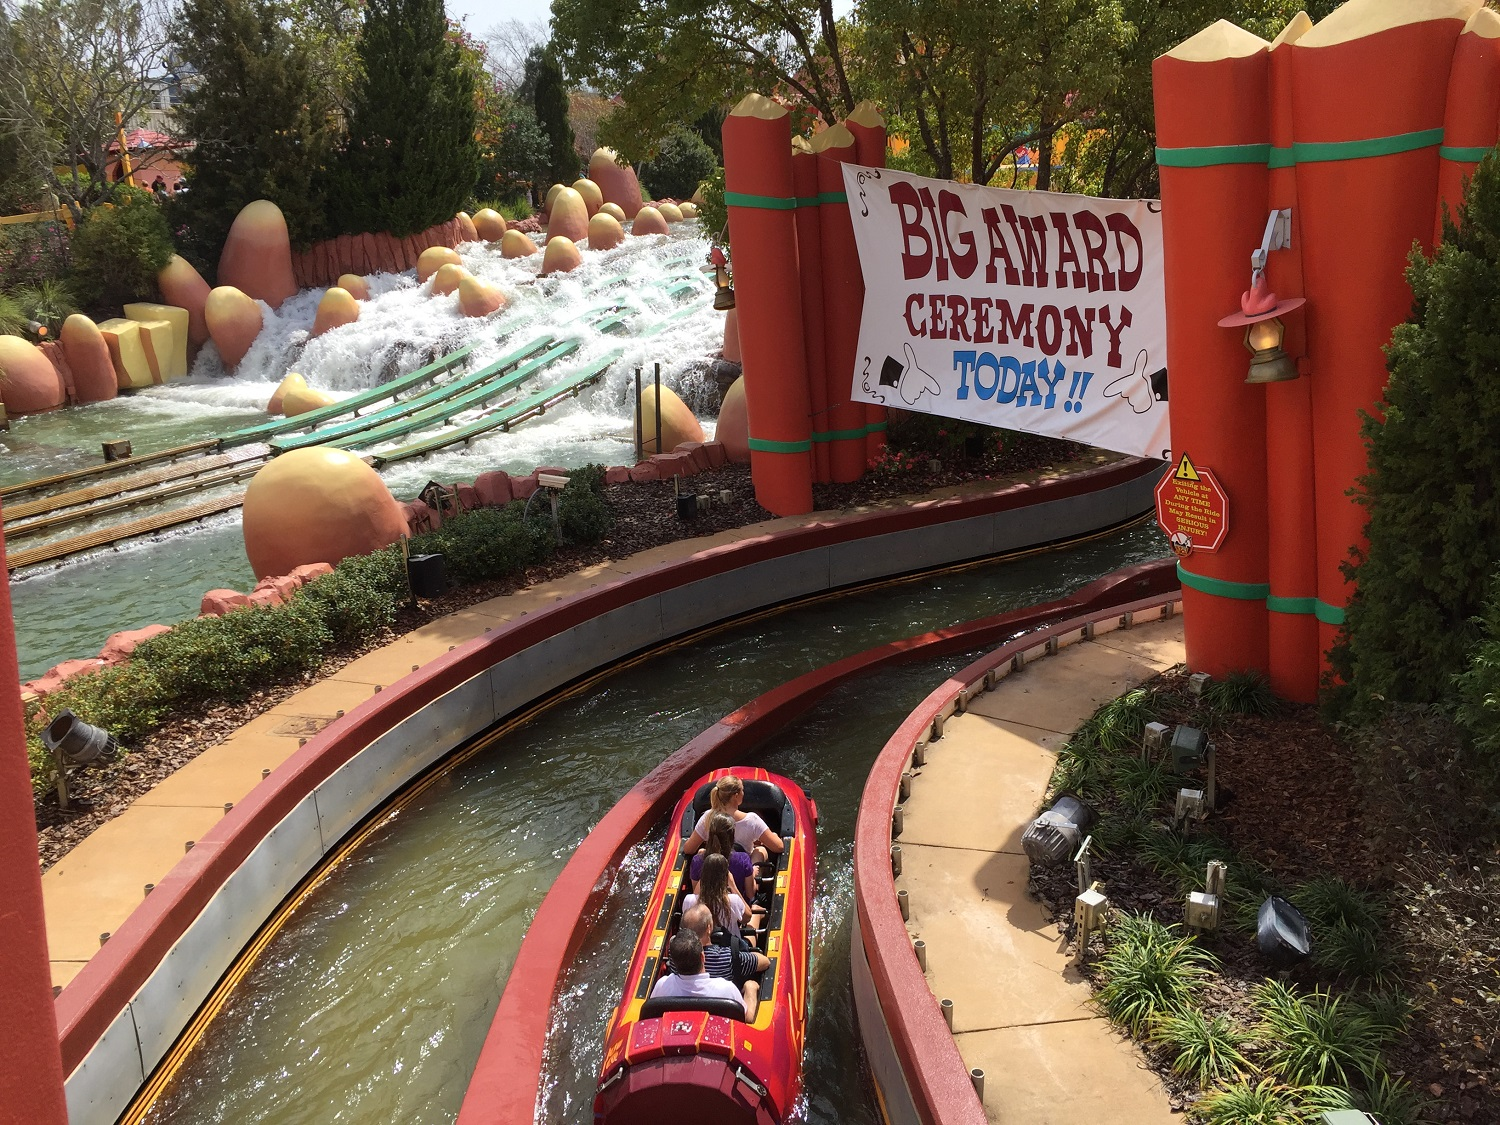 Each Dudley Do-Right ride vehicle seats five people.